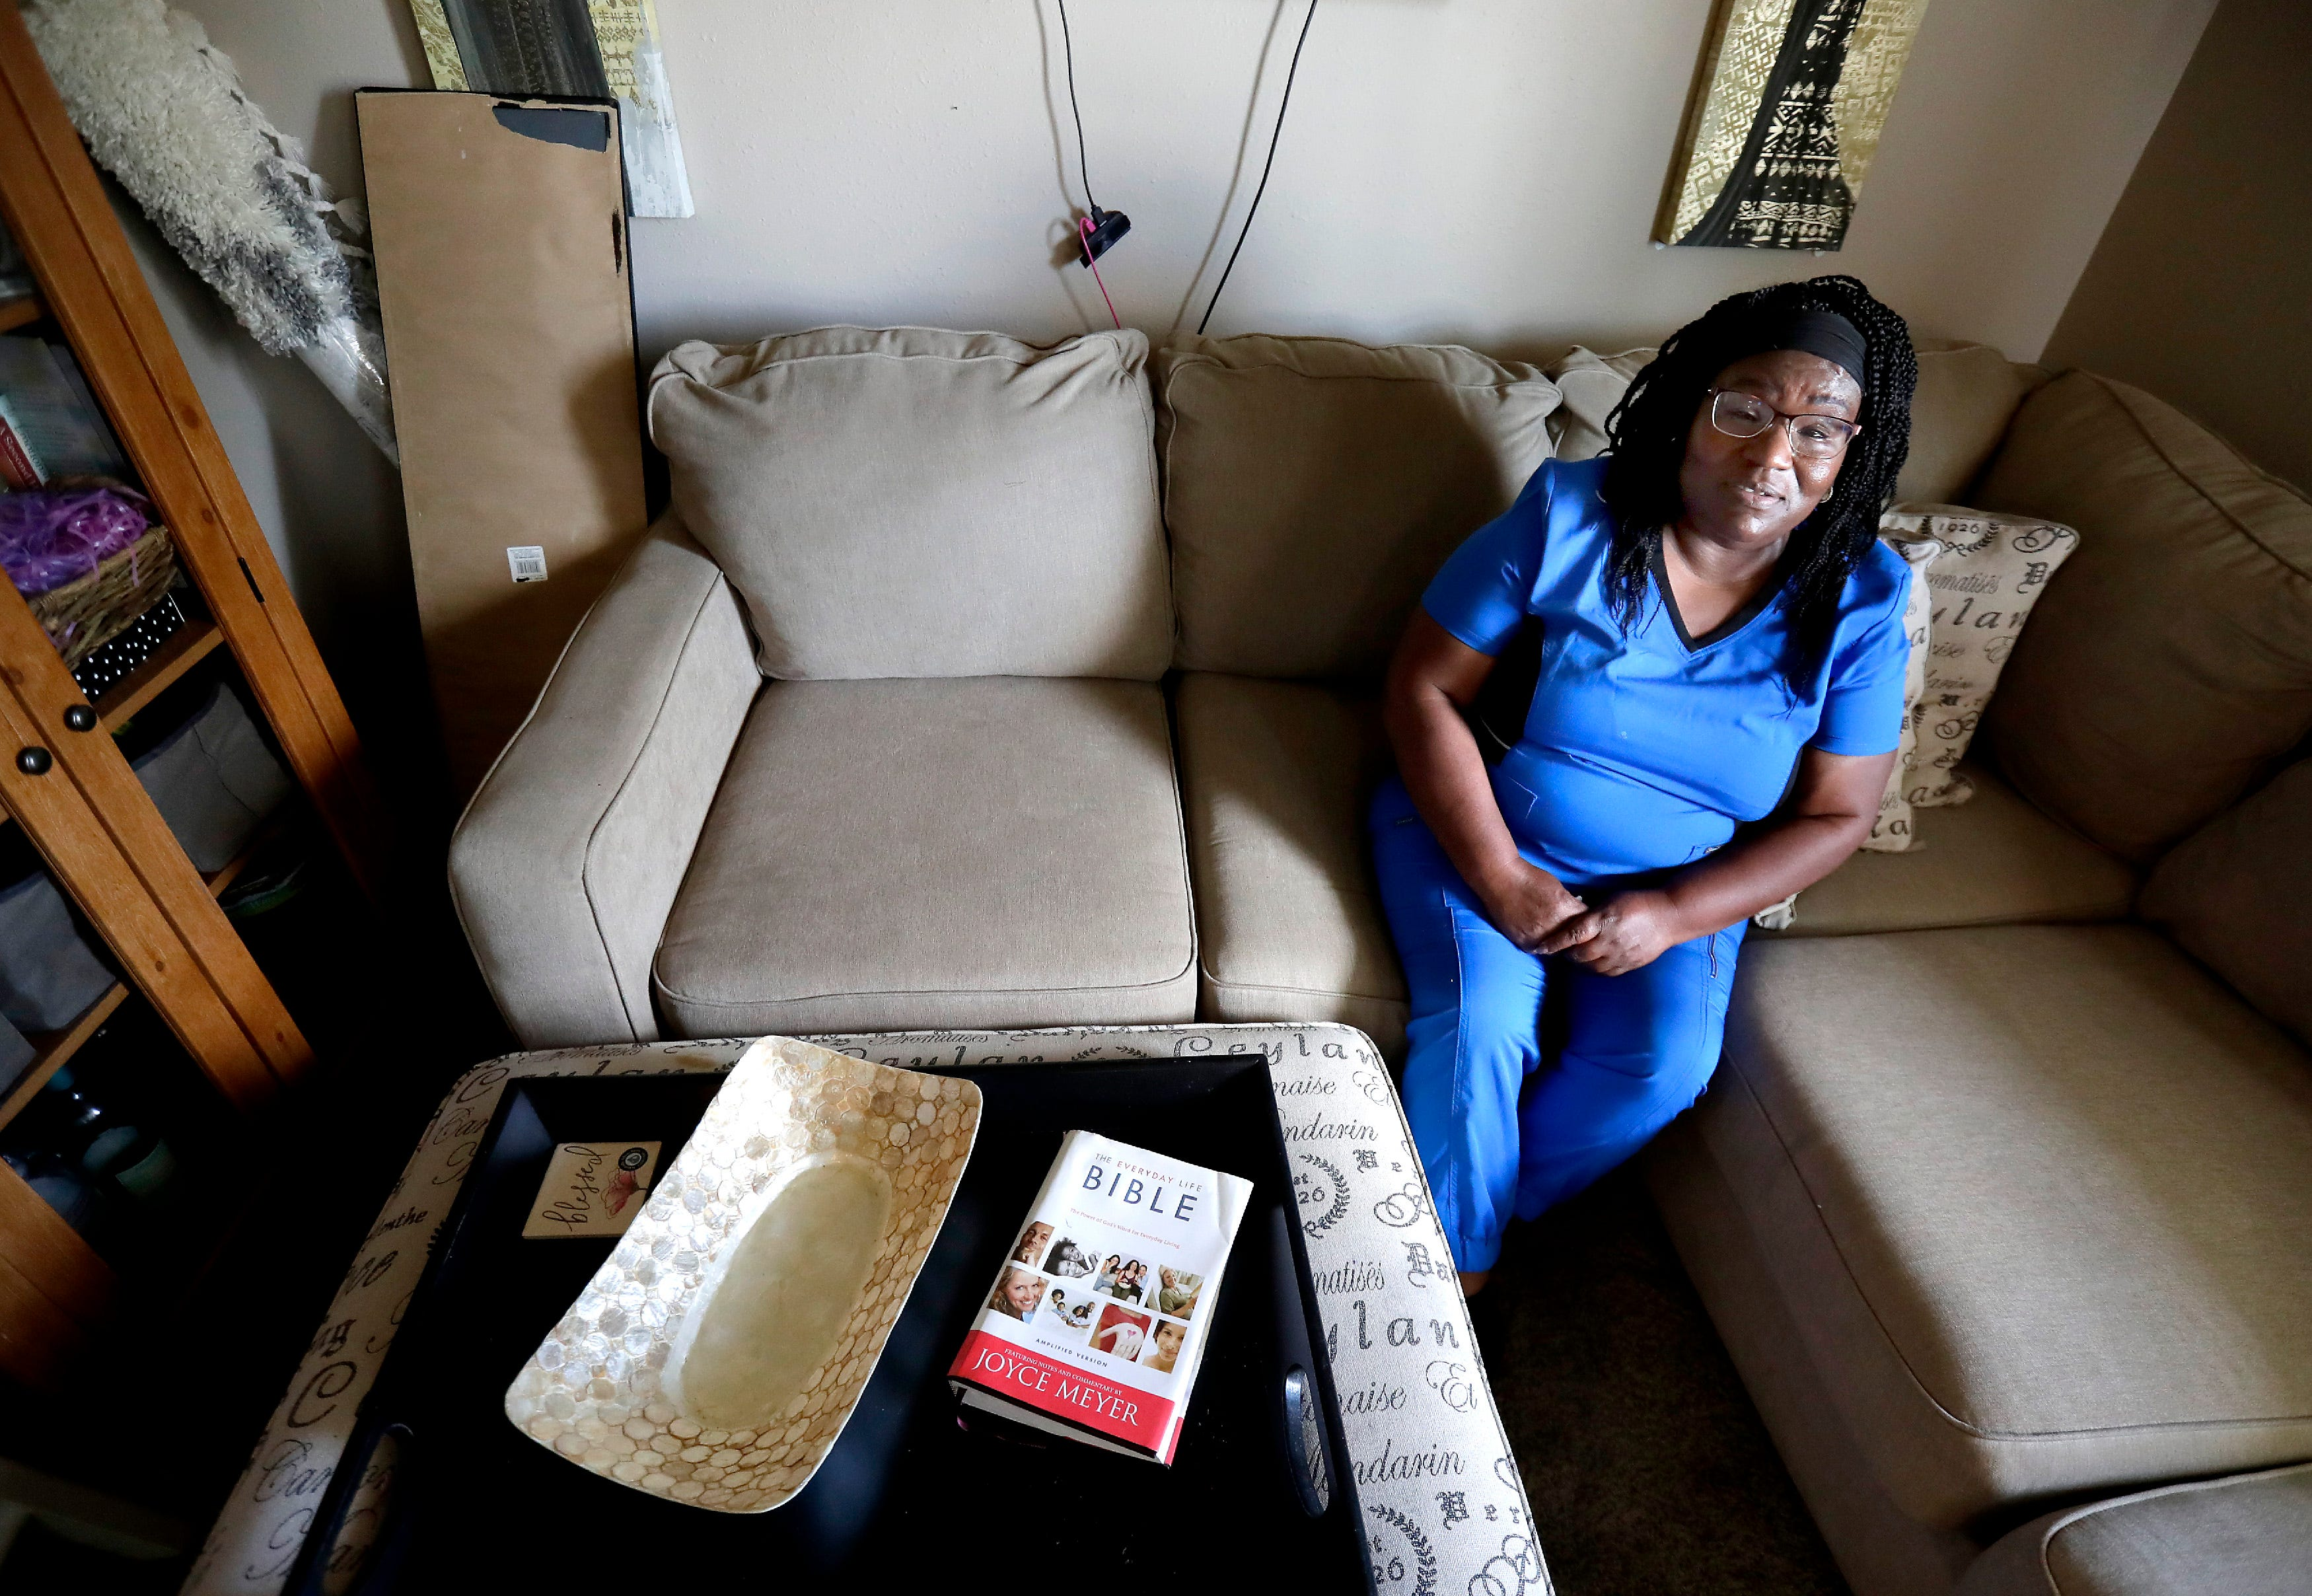 Marion Scott, pictured in her Oshkosh apartment, has looked without success for a larger two-bedroom apartment in Oshkosh. The 60-year-old single woman says landlords won't rent to her because of her past financial problems and racial discrimination.